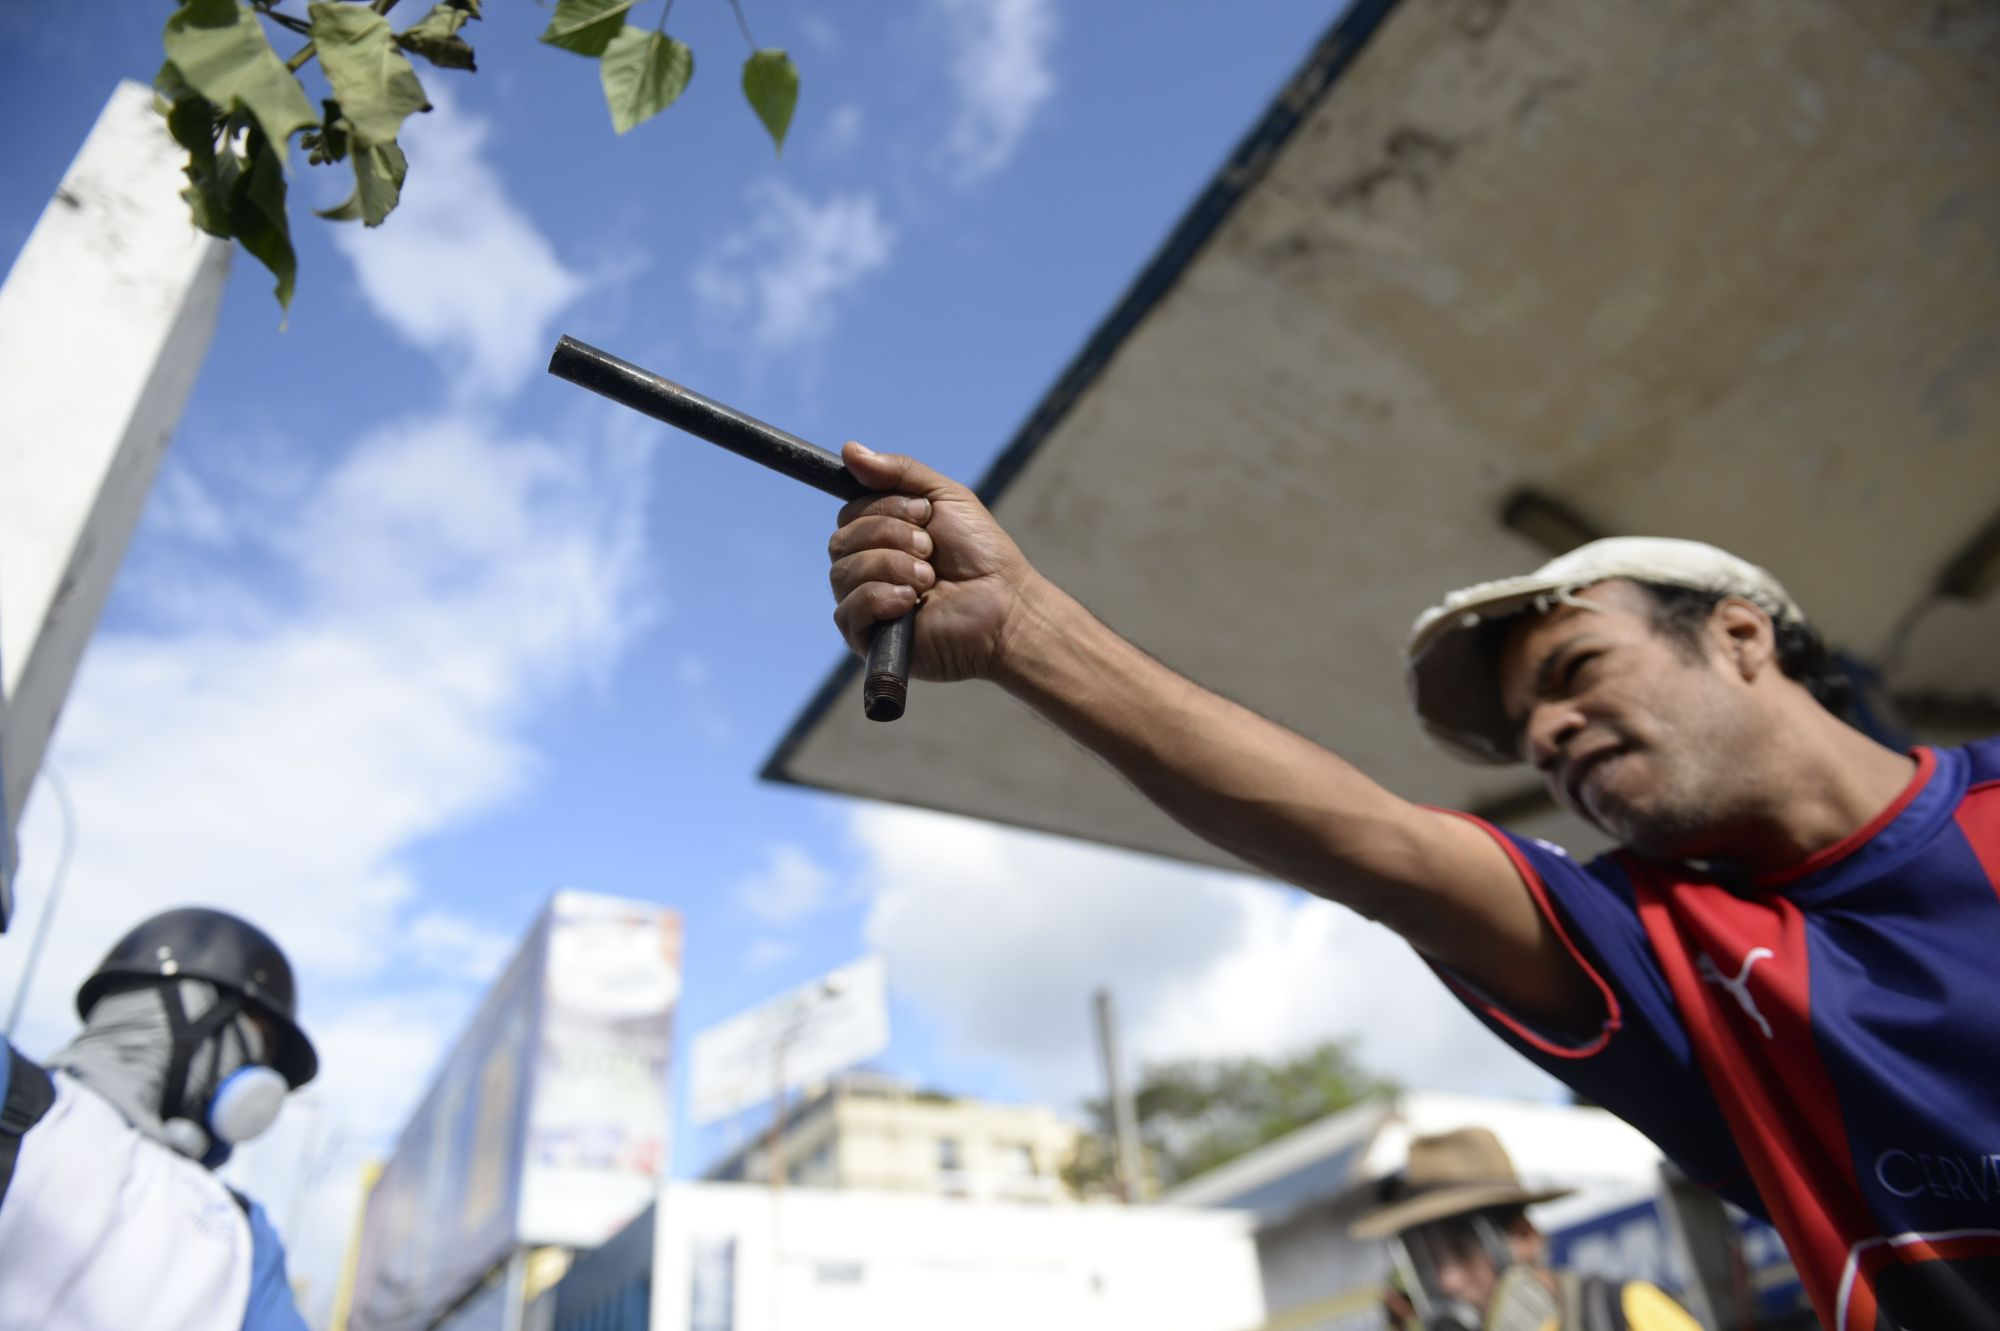 An anti-government activist fires an improvised handgun made out of an iron tube that can fire a marble or a steel bearing impulsed by a firecracker during clashes with security forces ensuing a protest over the elections for a Constituent Assembly proposed by Venezuelan President Nicolas Maduro, in Caracas on Sunday. Deadly violence erupted around the controversial vote, with a candidate to the all-powerful body being elected shot dead and troops firing weapons to clear protesters in Caracas and elsewhere. | AFP-JIJI